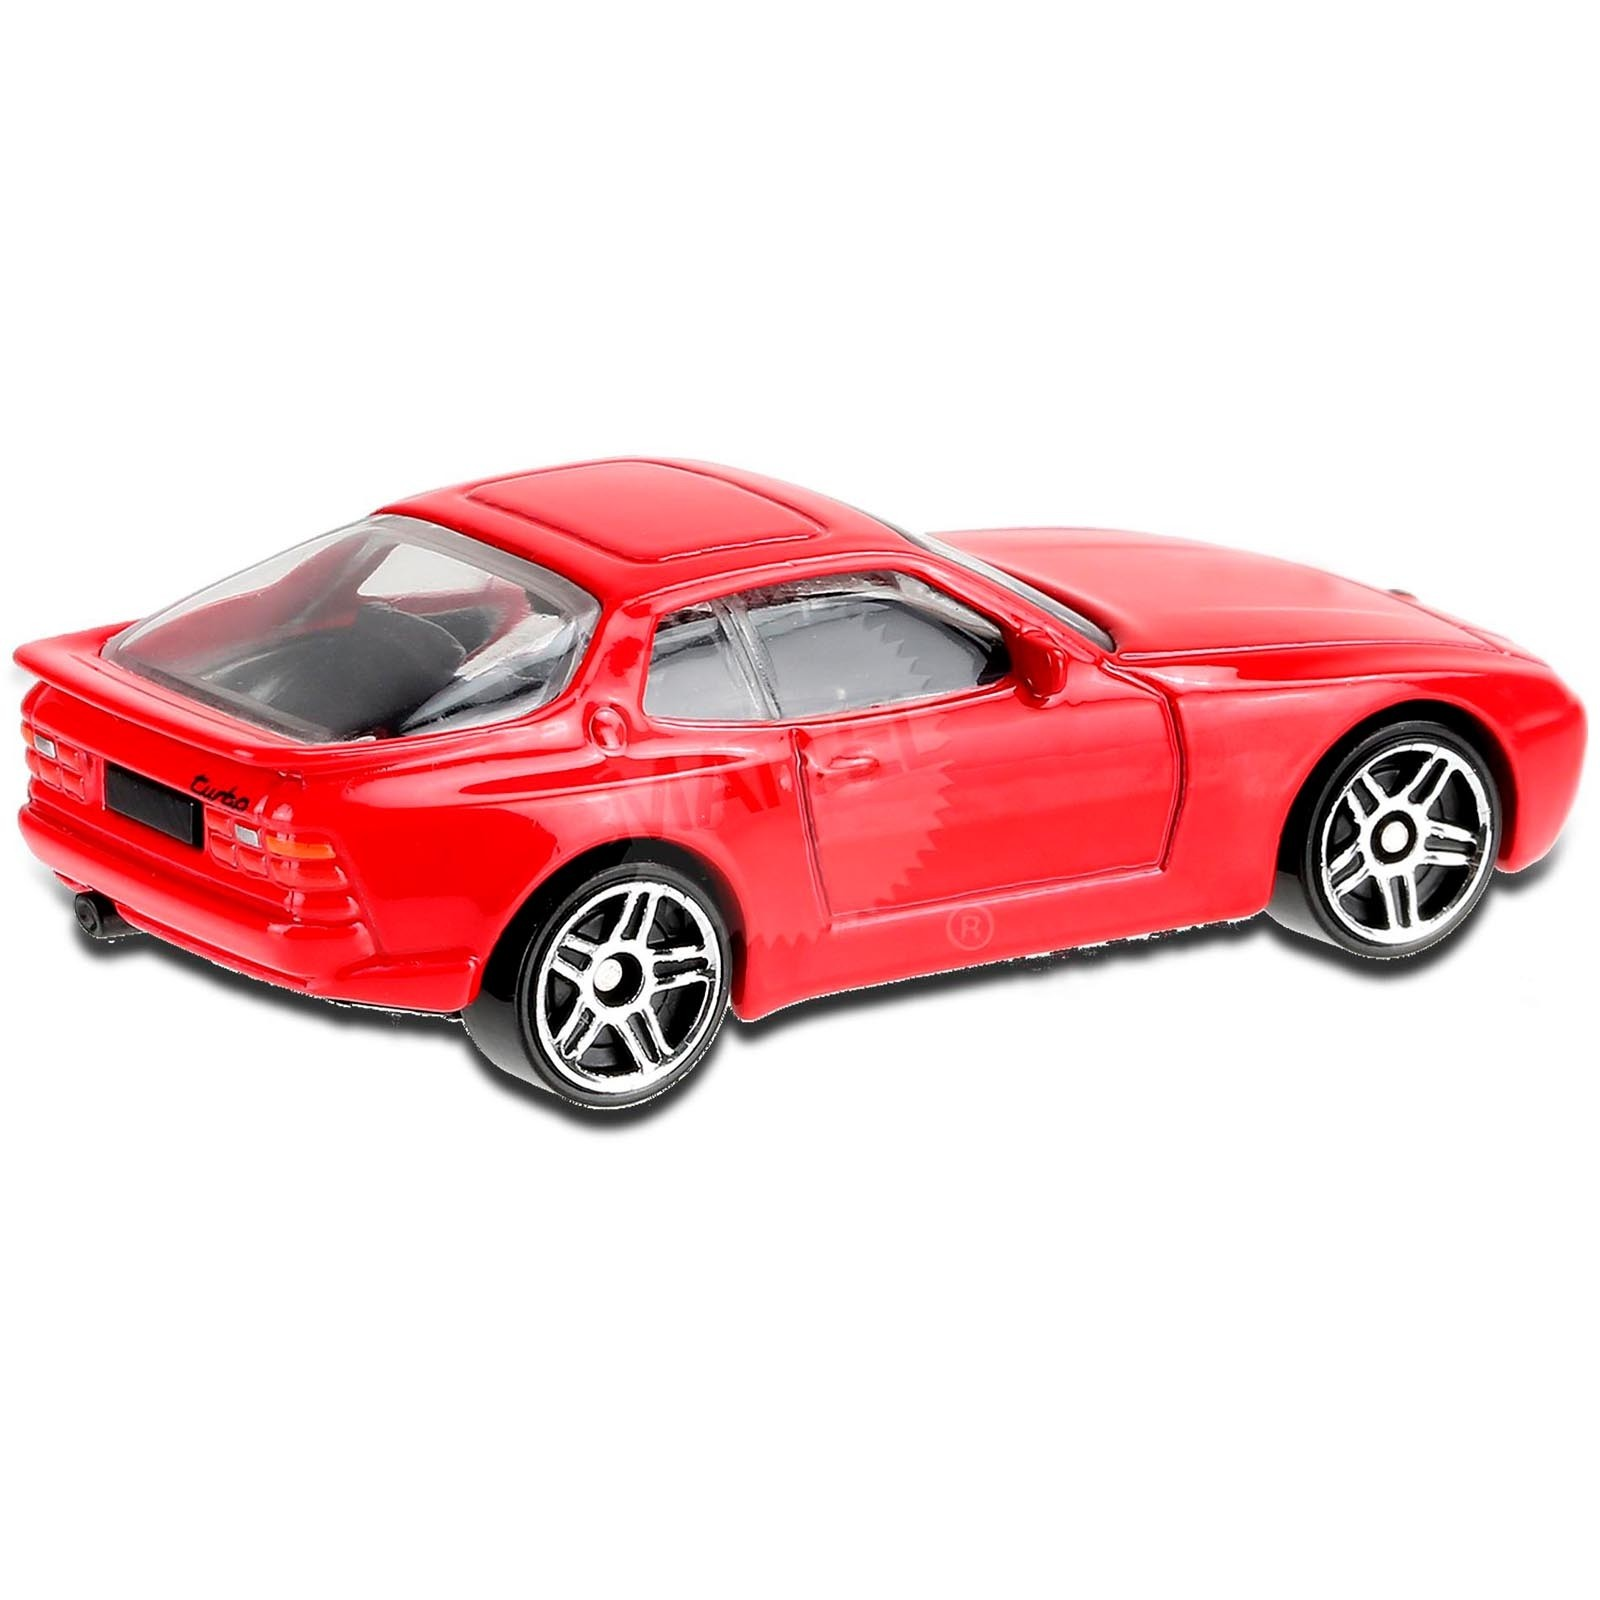 Hot Wheels 89 Porsche 944 Turbo Ghb54 Escala Miniaturas By Mao Na Roda 4x4